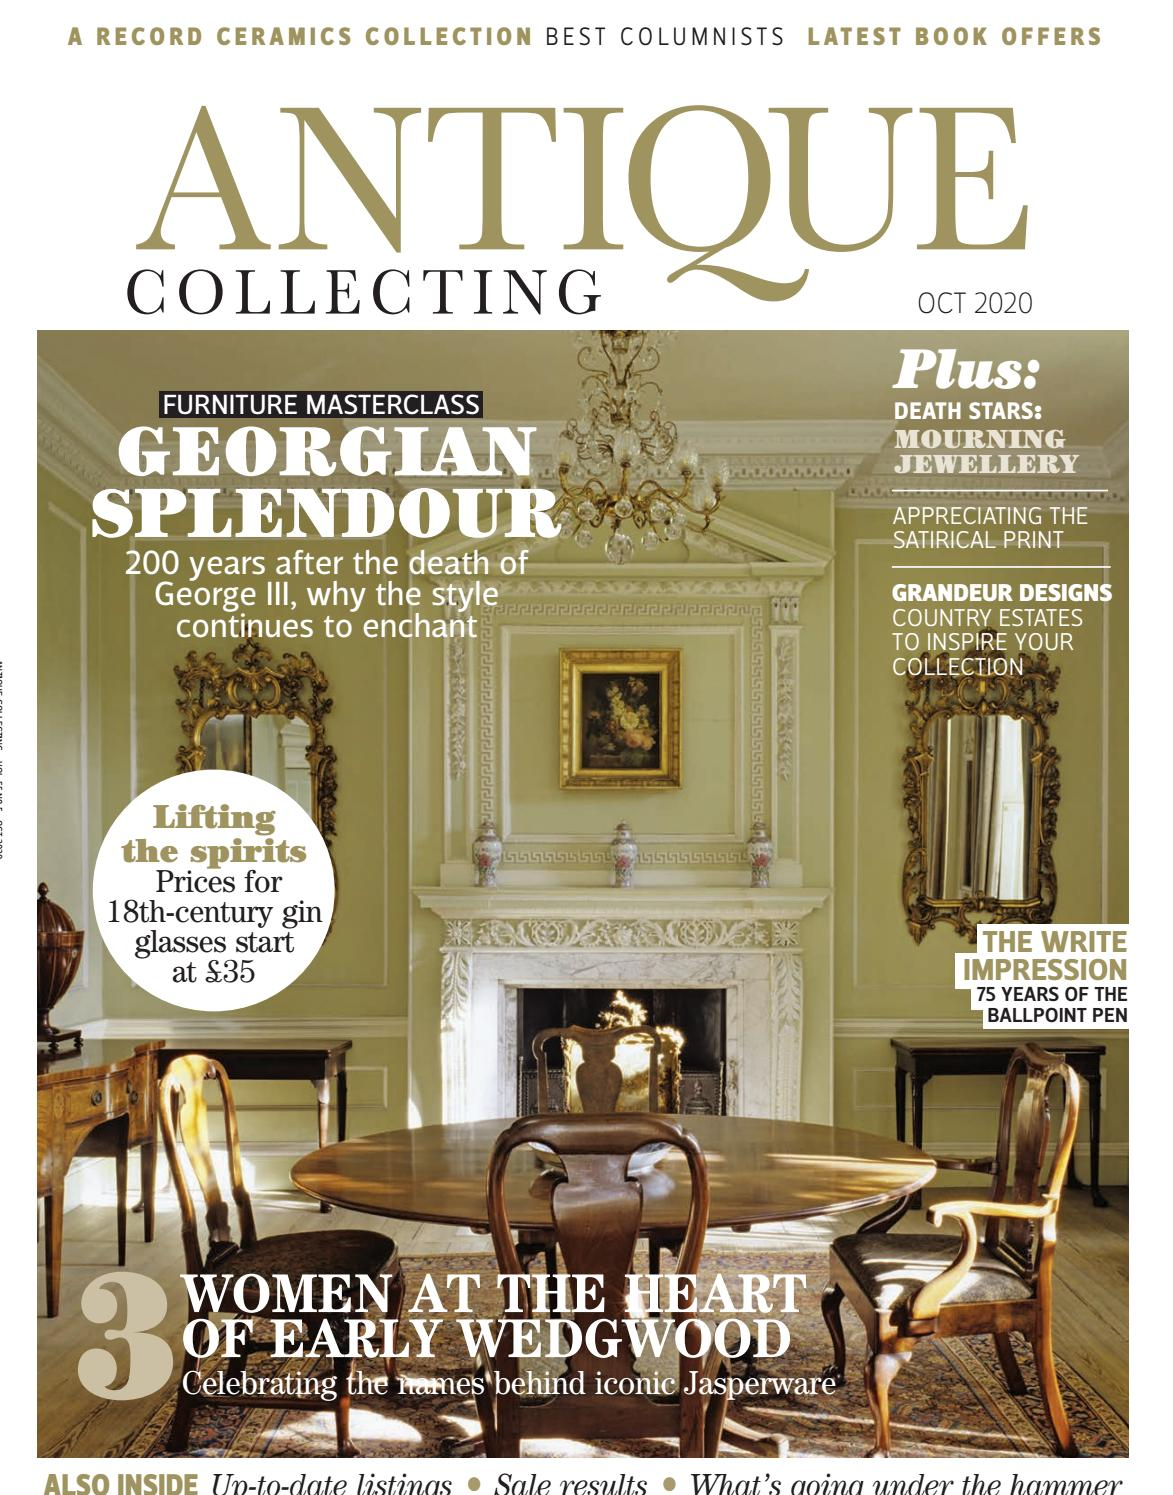 October Issue Antique Collecting Magazine By Acc Art Books Issuu